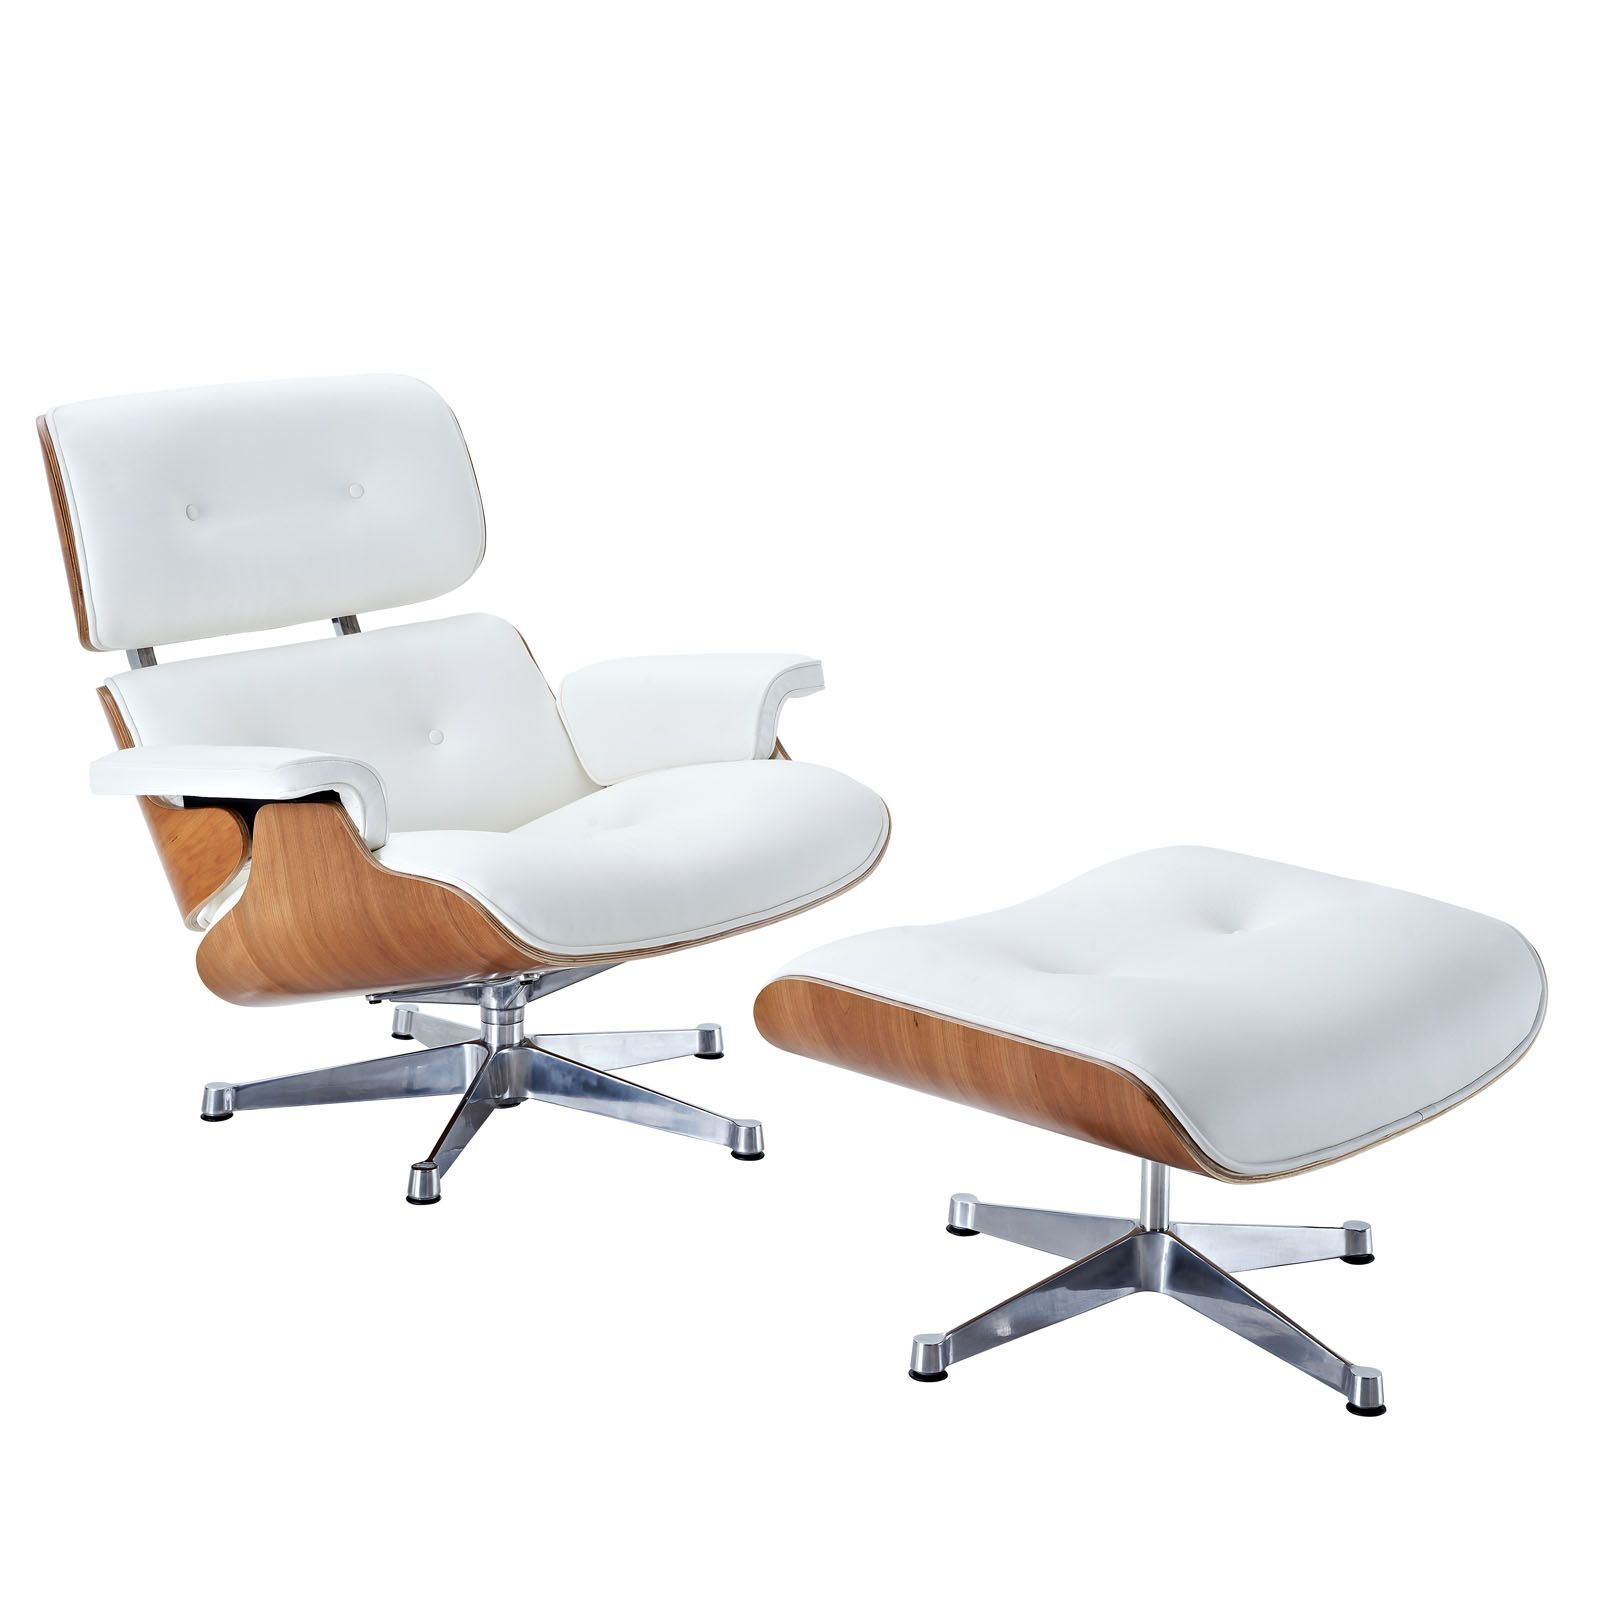 Alternative to Eames Lounge Chair & Ottoman for 1049